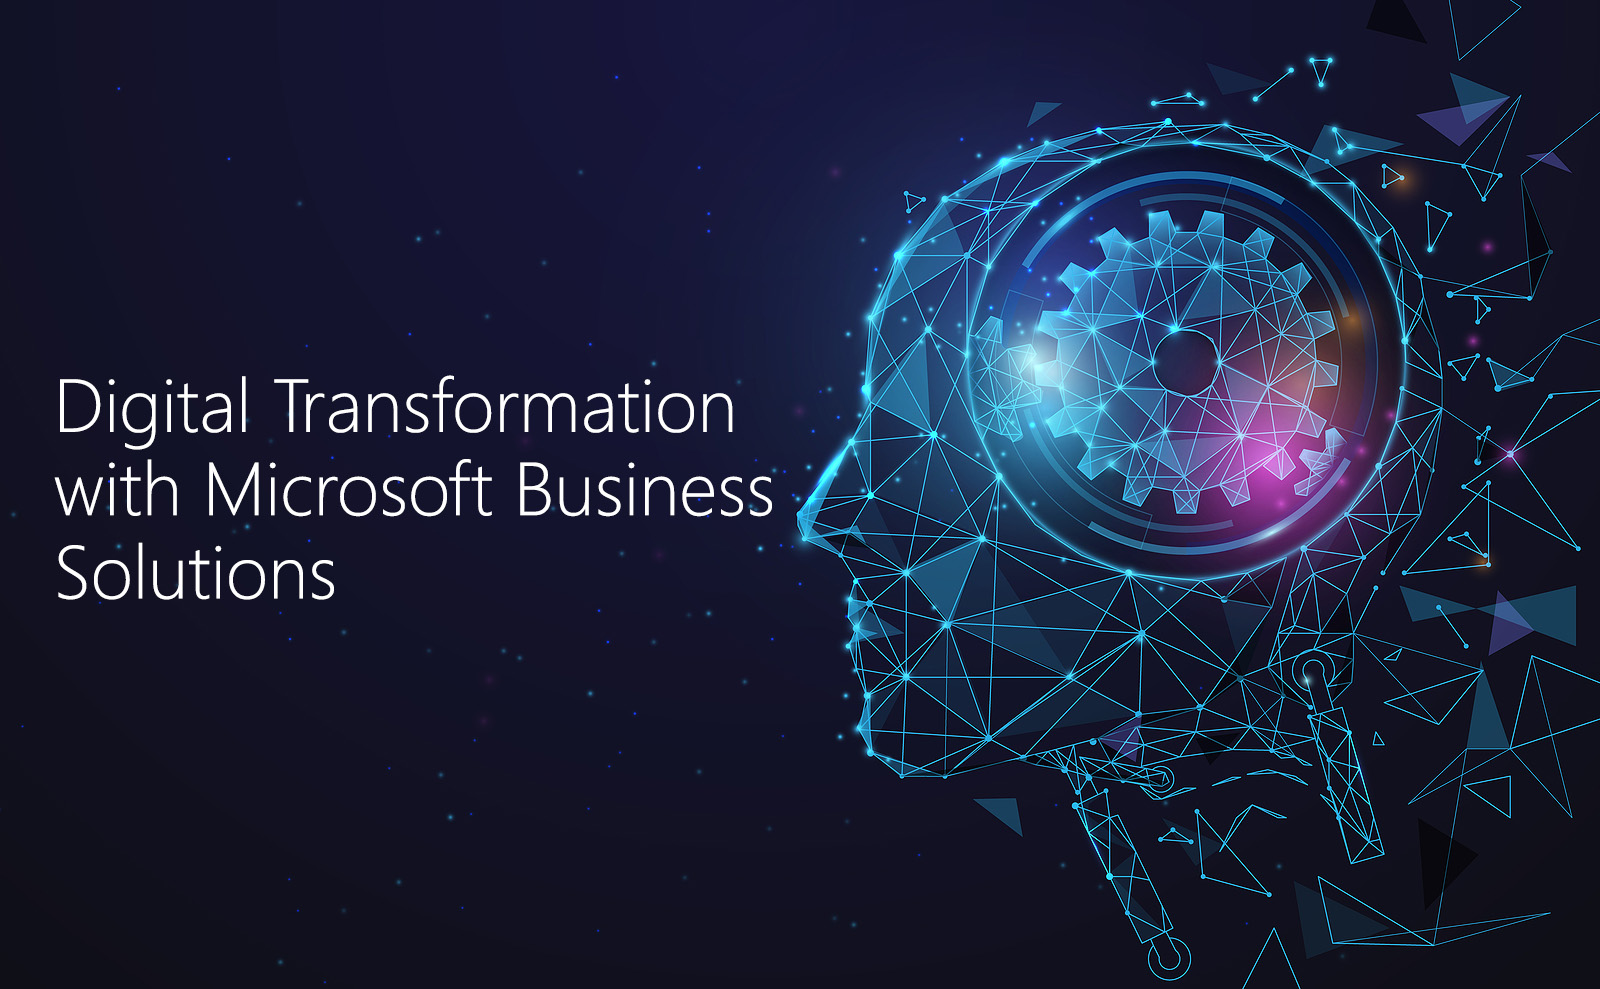 Digital Transformation Benefits with Microsoft Business Solutions